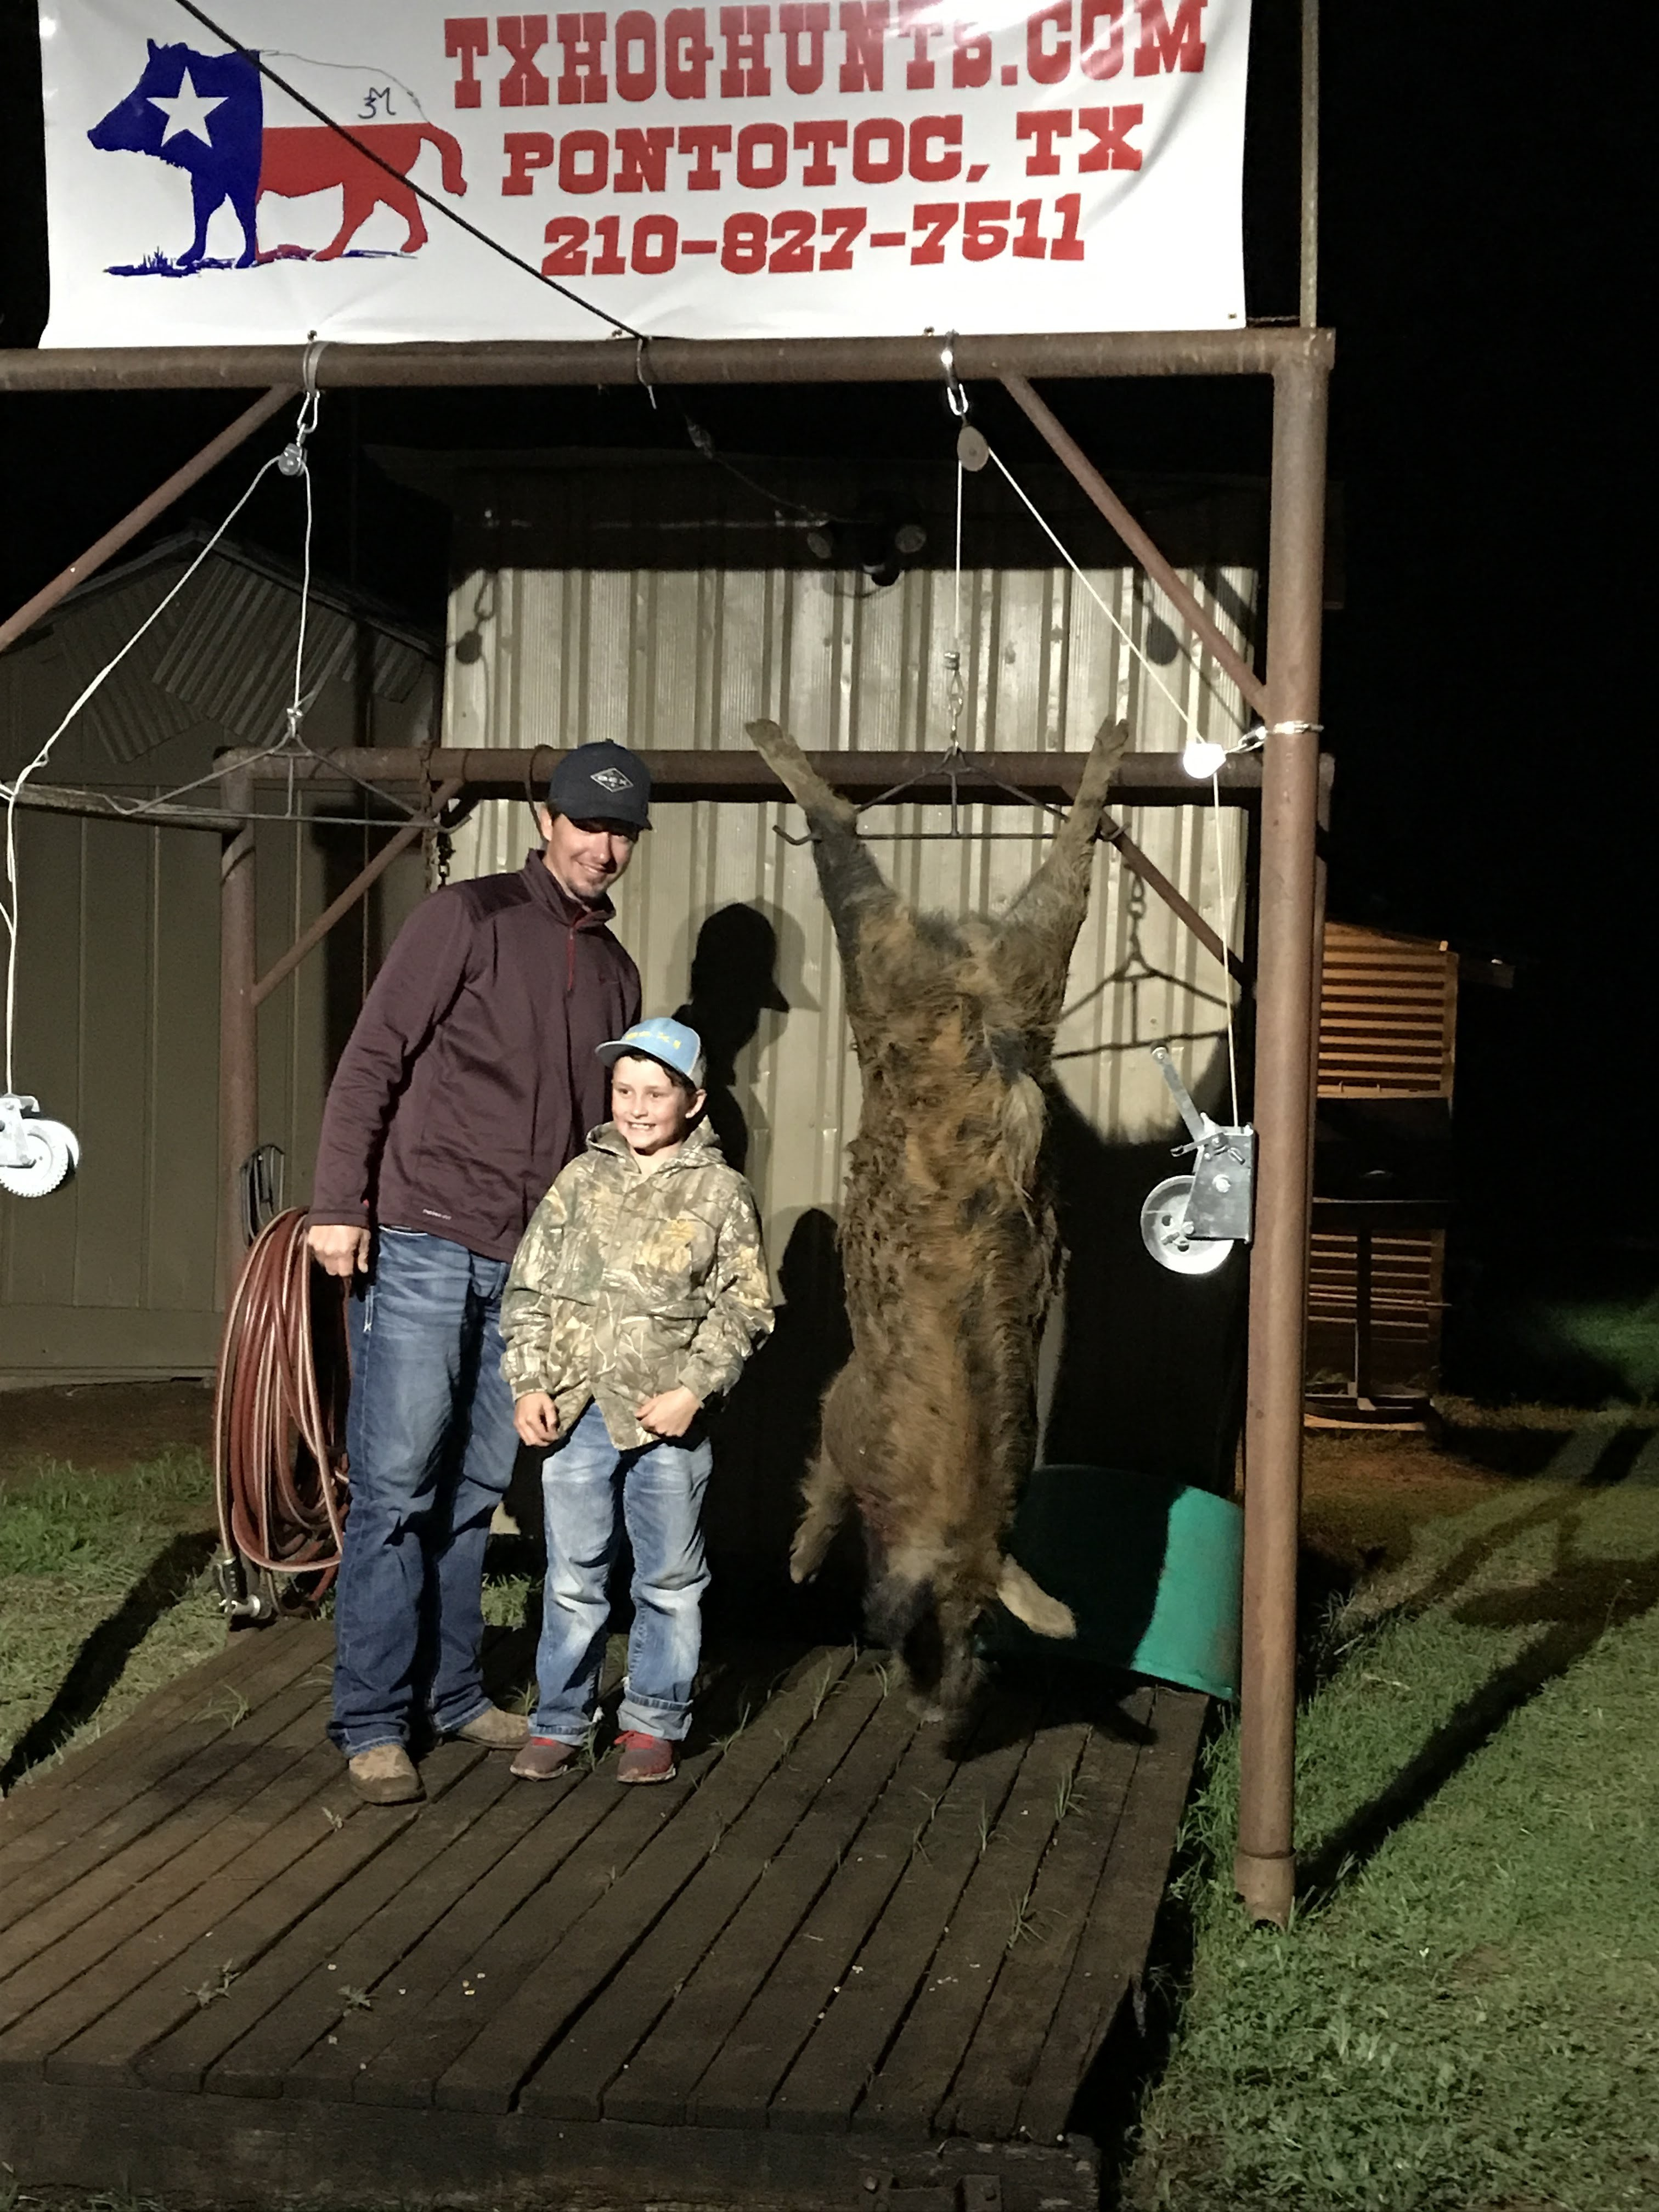 all-inclusive-hill-country-hog-hunt-15487733491706613657